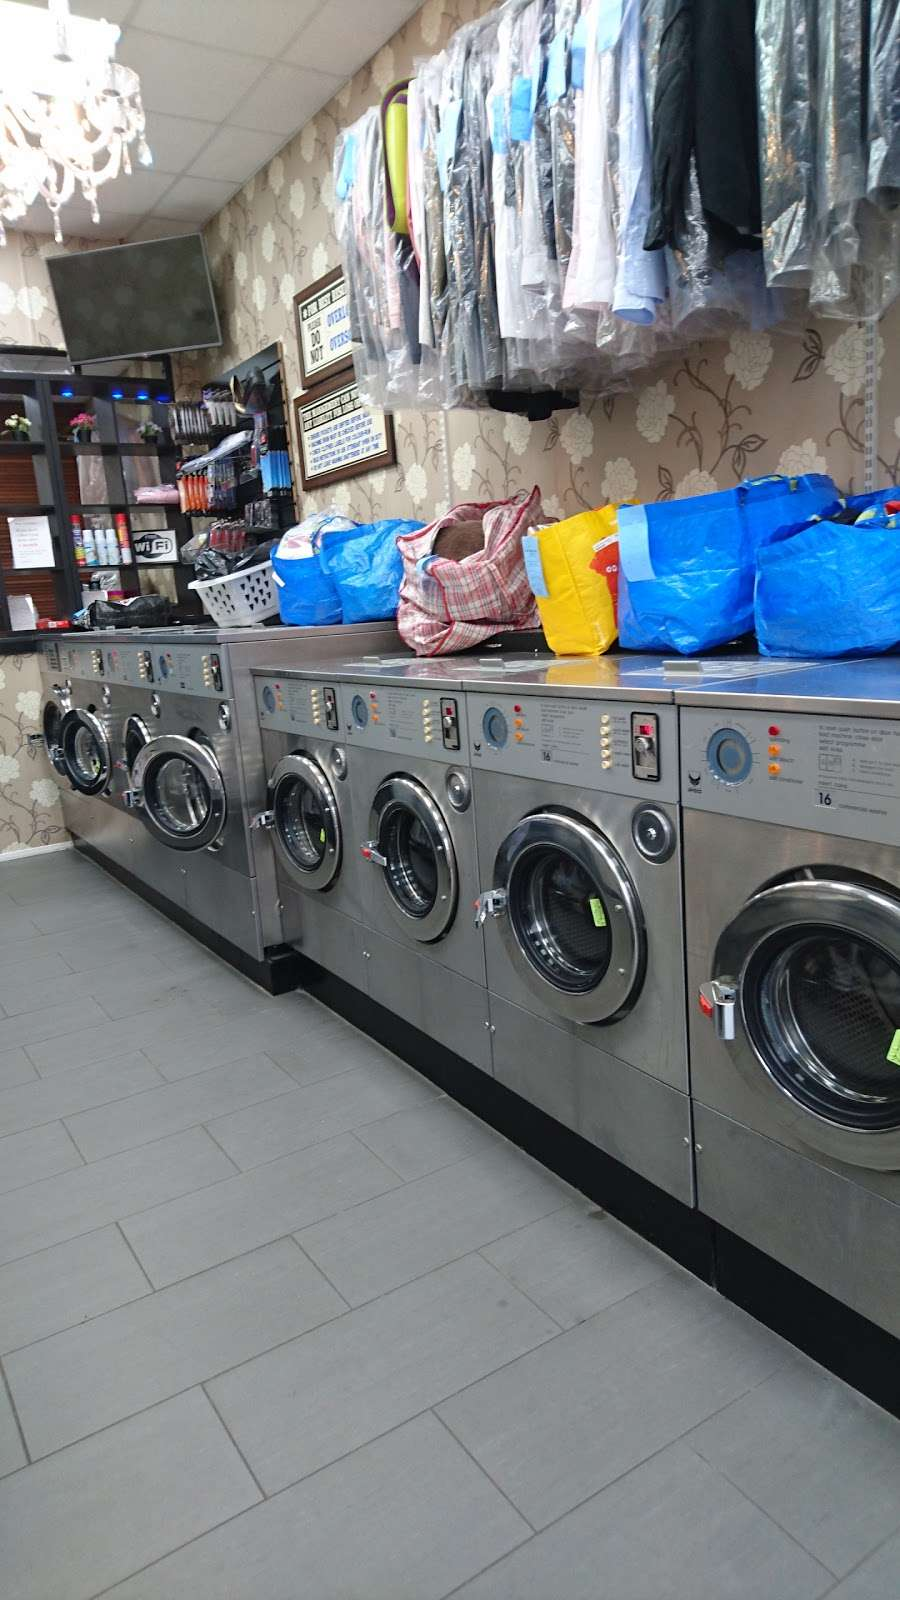 King Dry Cleaning & Laundrette - laundry  | Photo 6 of 10 | Address: 35 Church Rd, London NW4 4EB, UK | Phone: 020 8201 5050